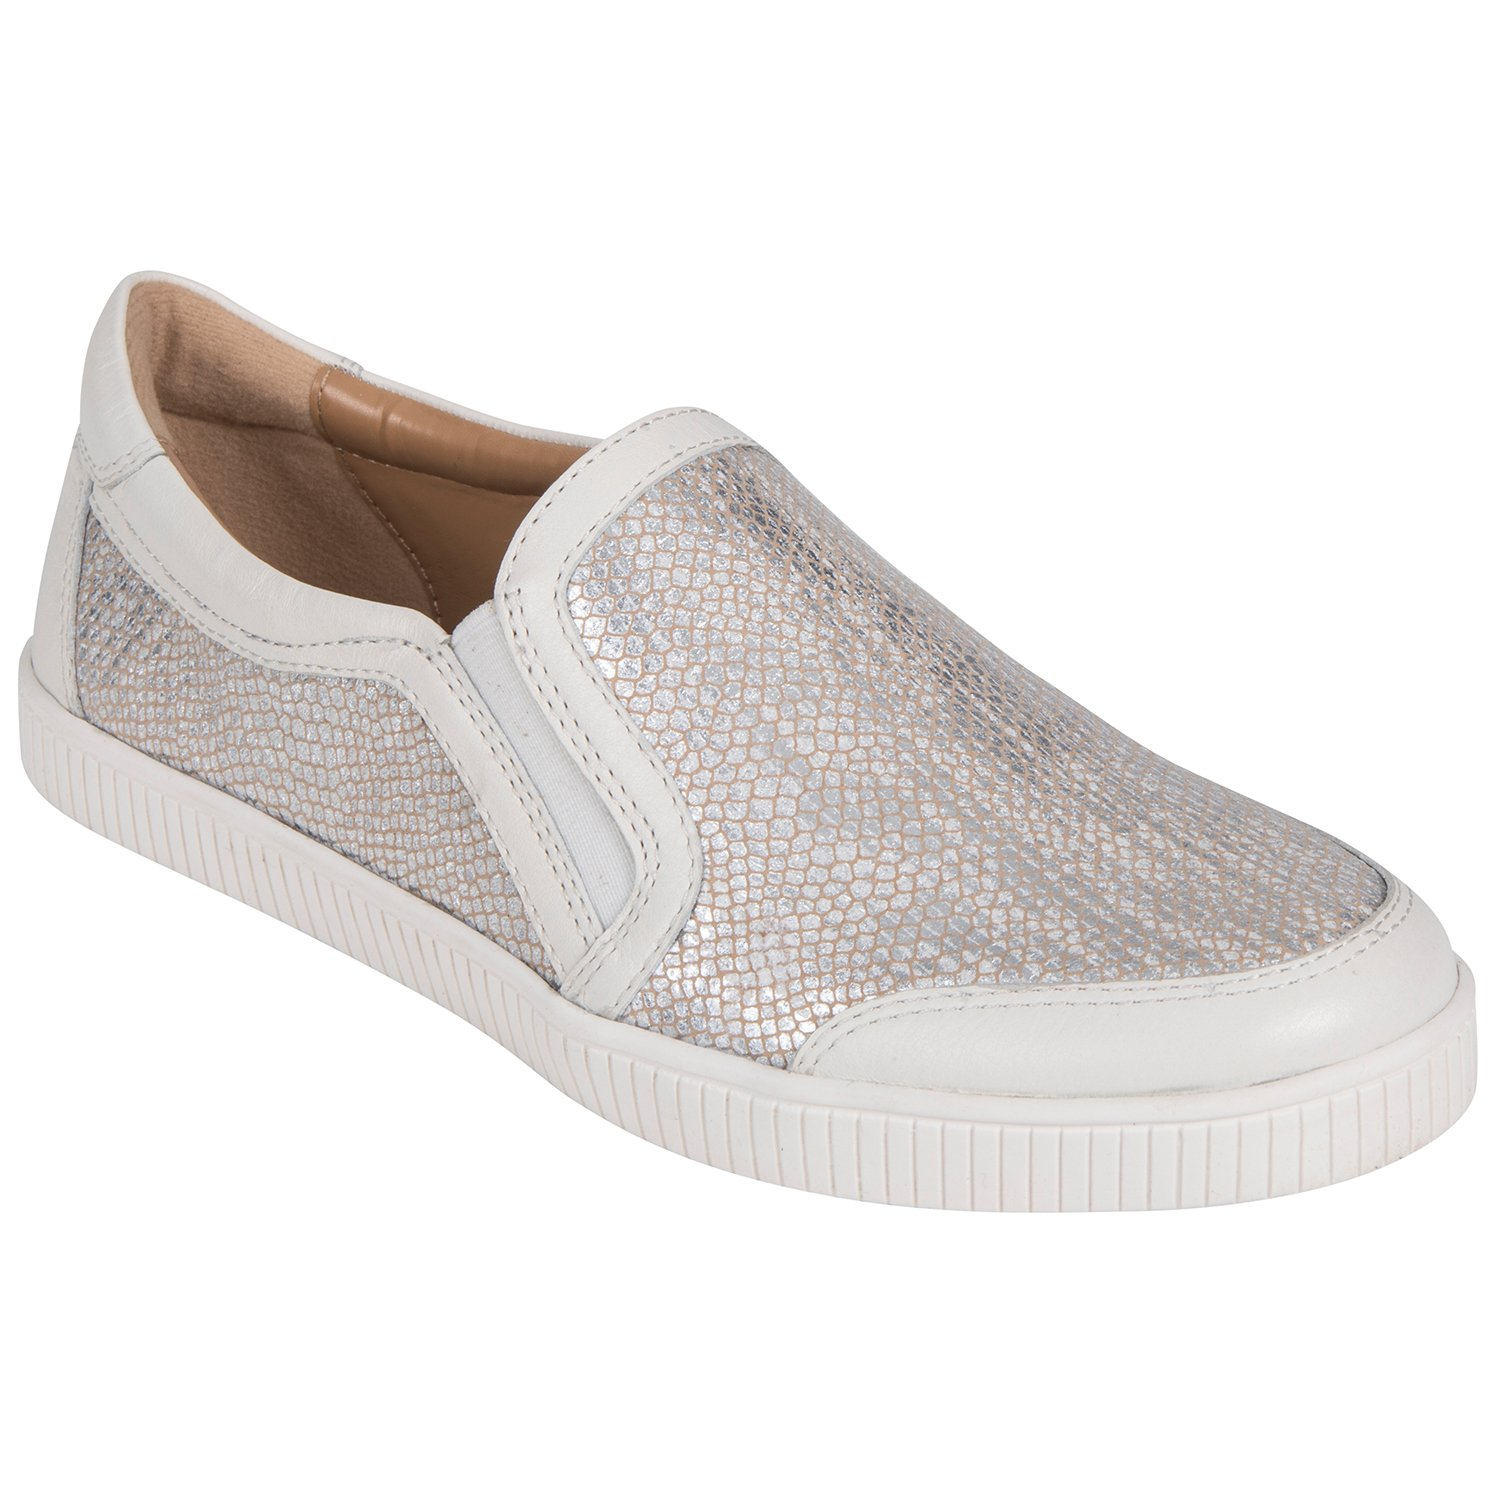 Earth Shoes Currant B07963D84Q 5.5 B(M) US|Light Silver